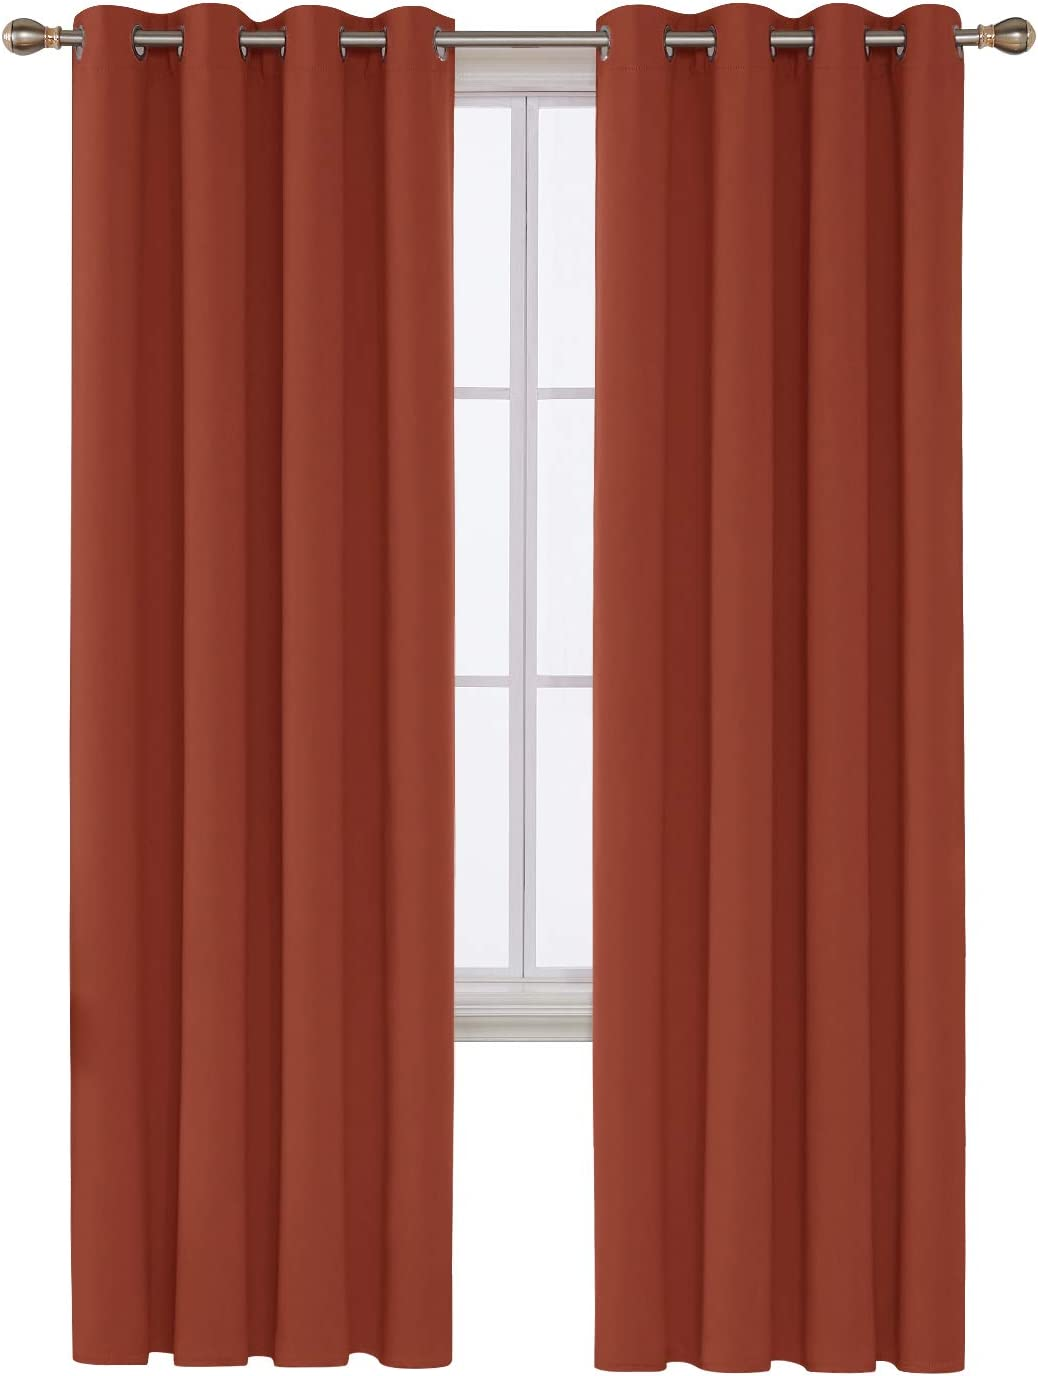 Deconovo Thermal Insulated Blackout Curtain Home Decor Orange Red, 52x95 Inch